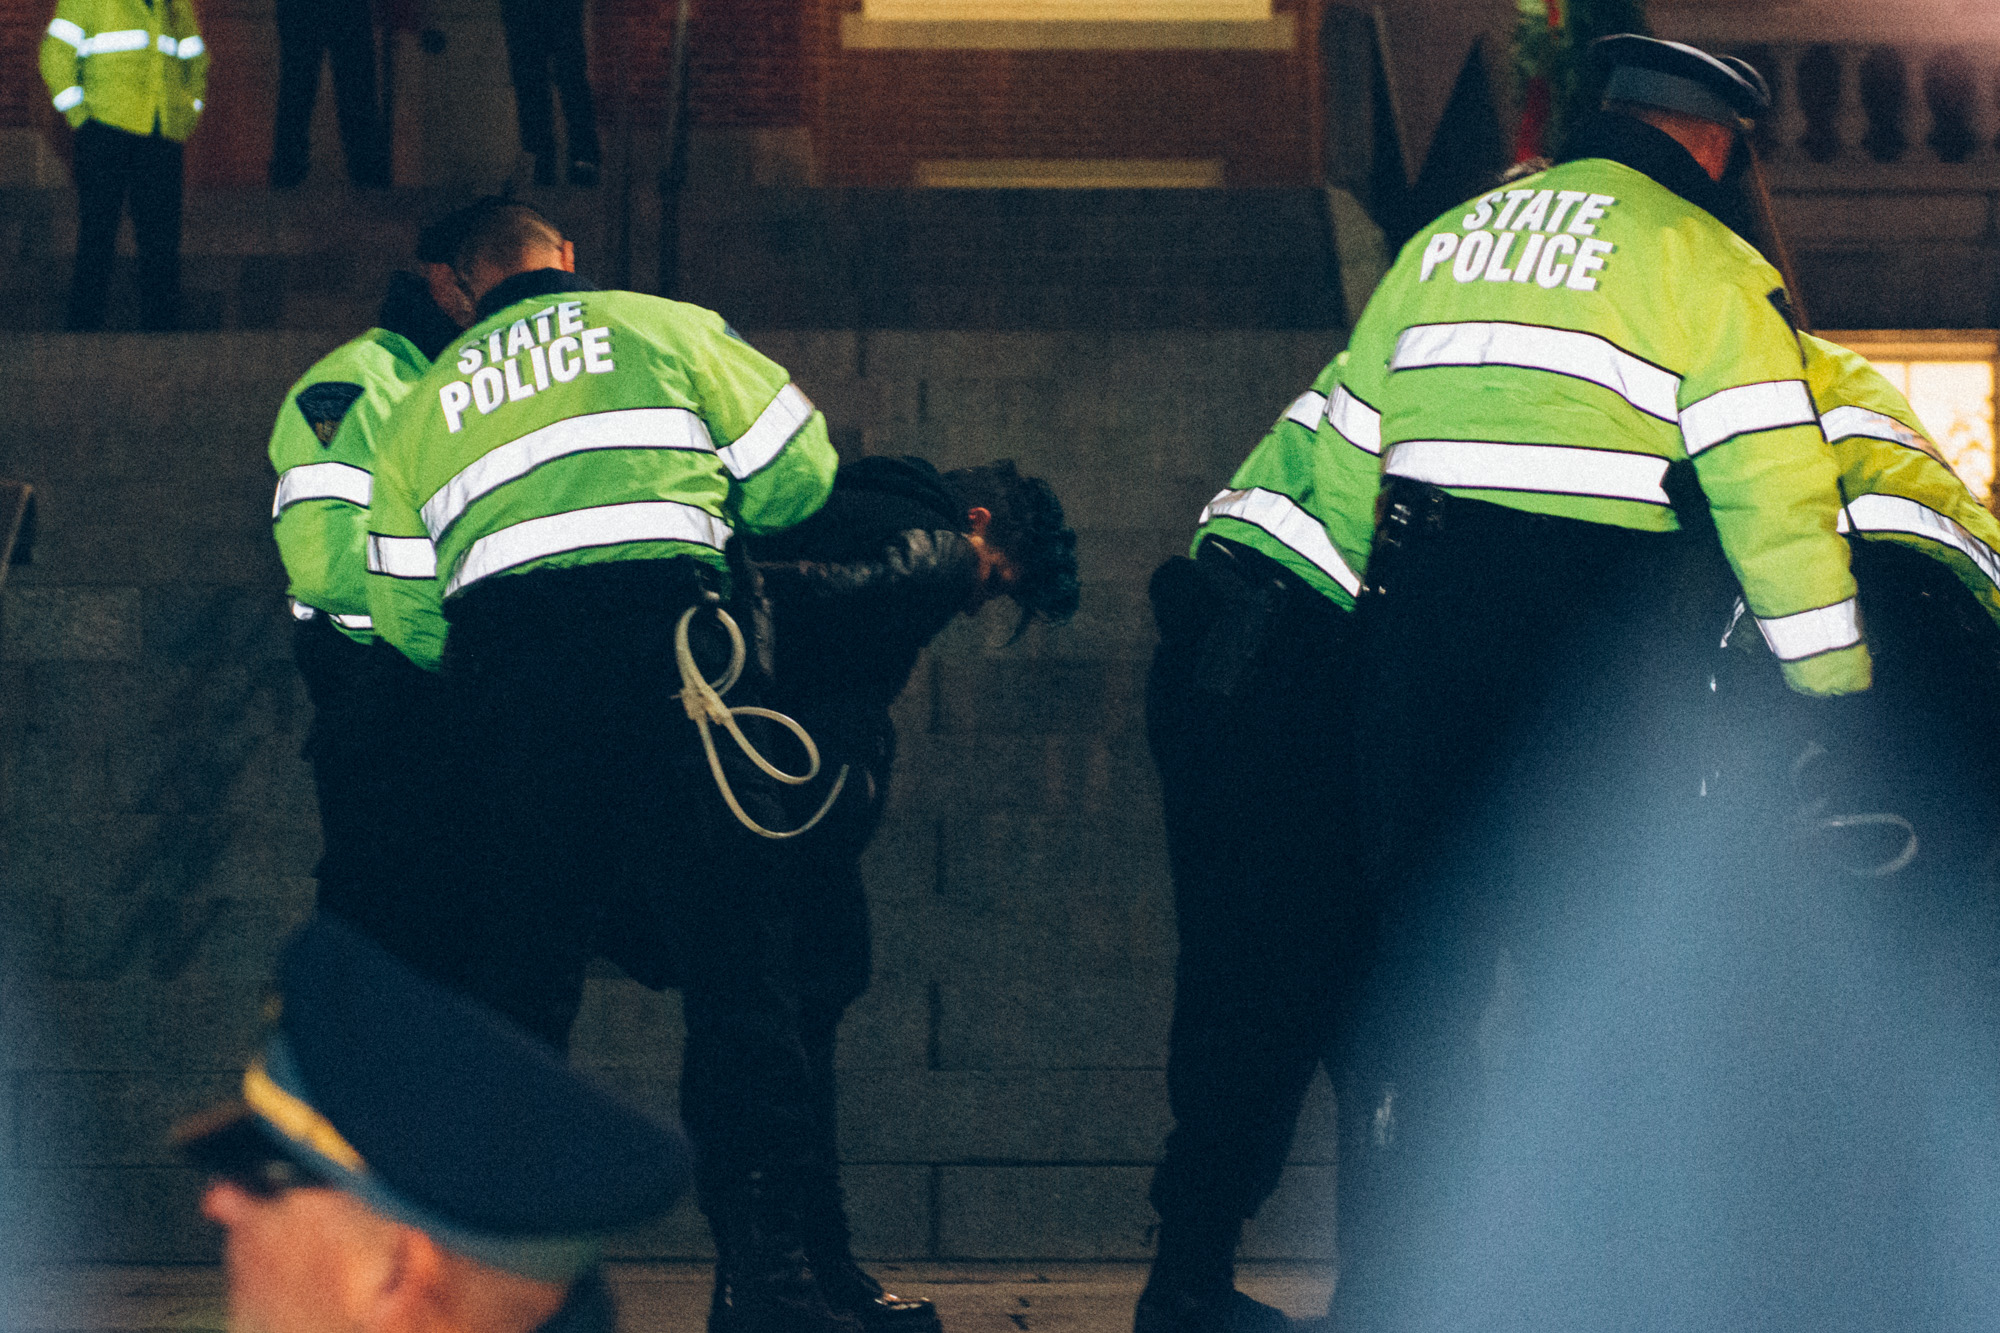 One of the three arrested protesters at the state house being arrested by the state police.